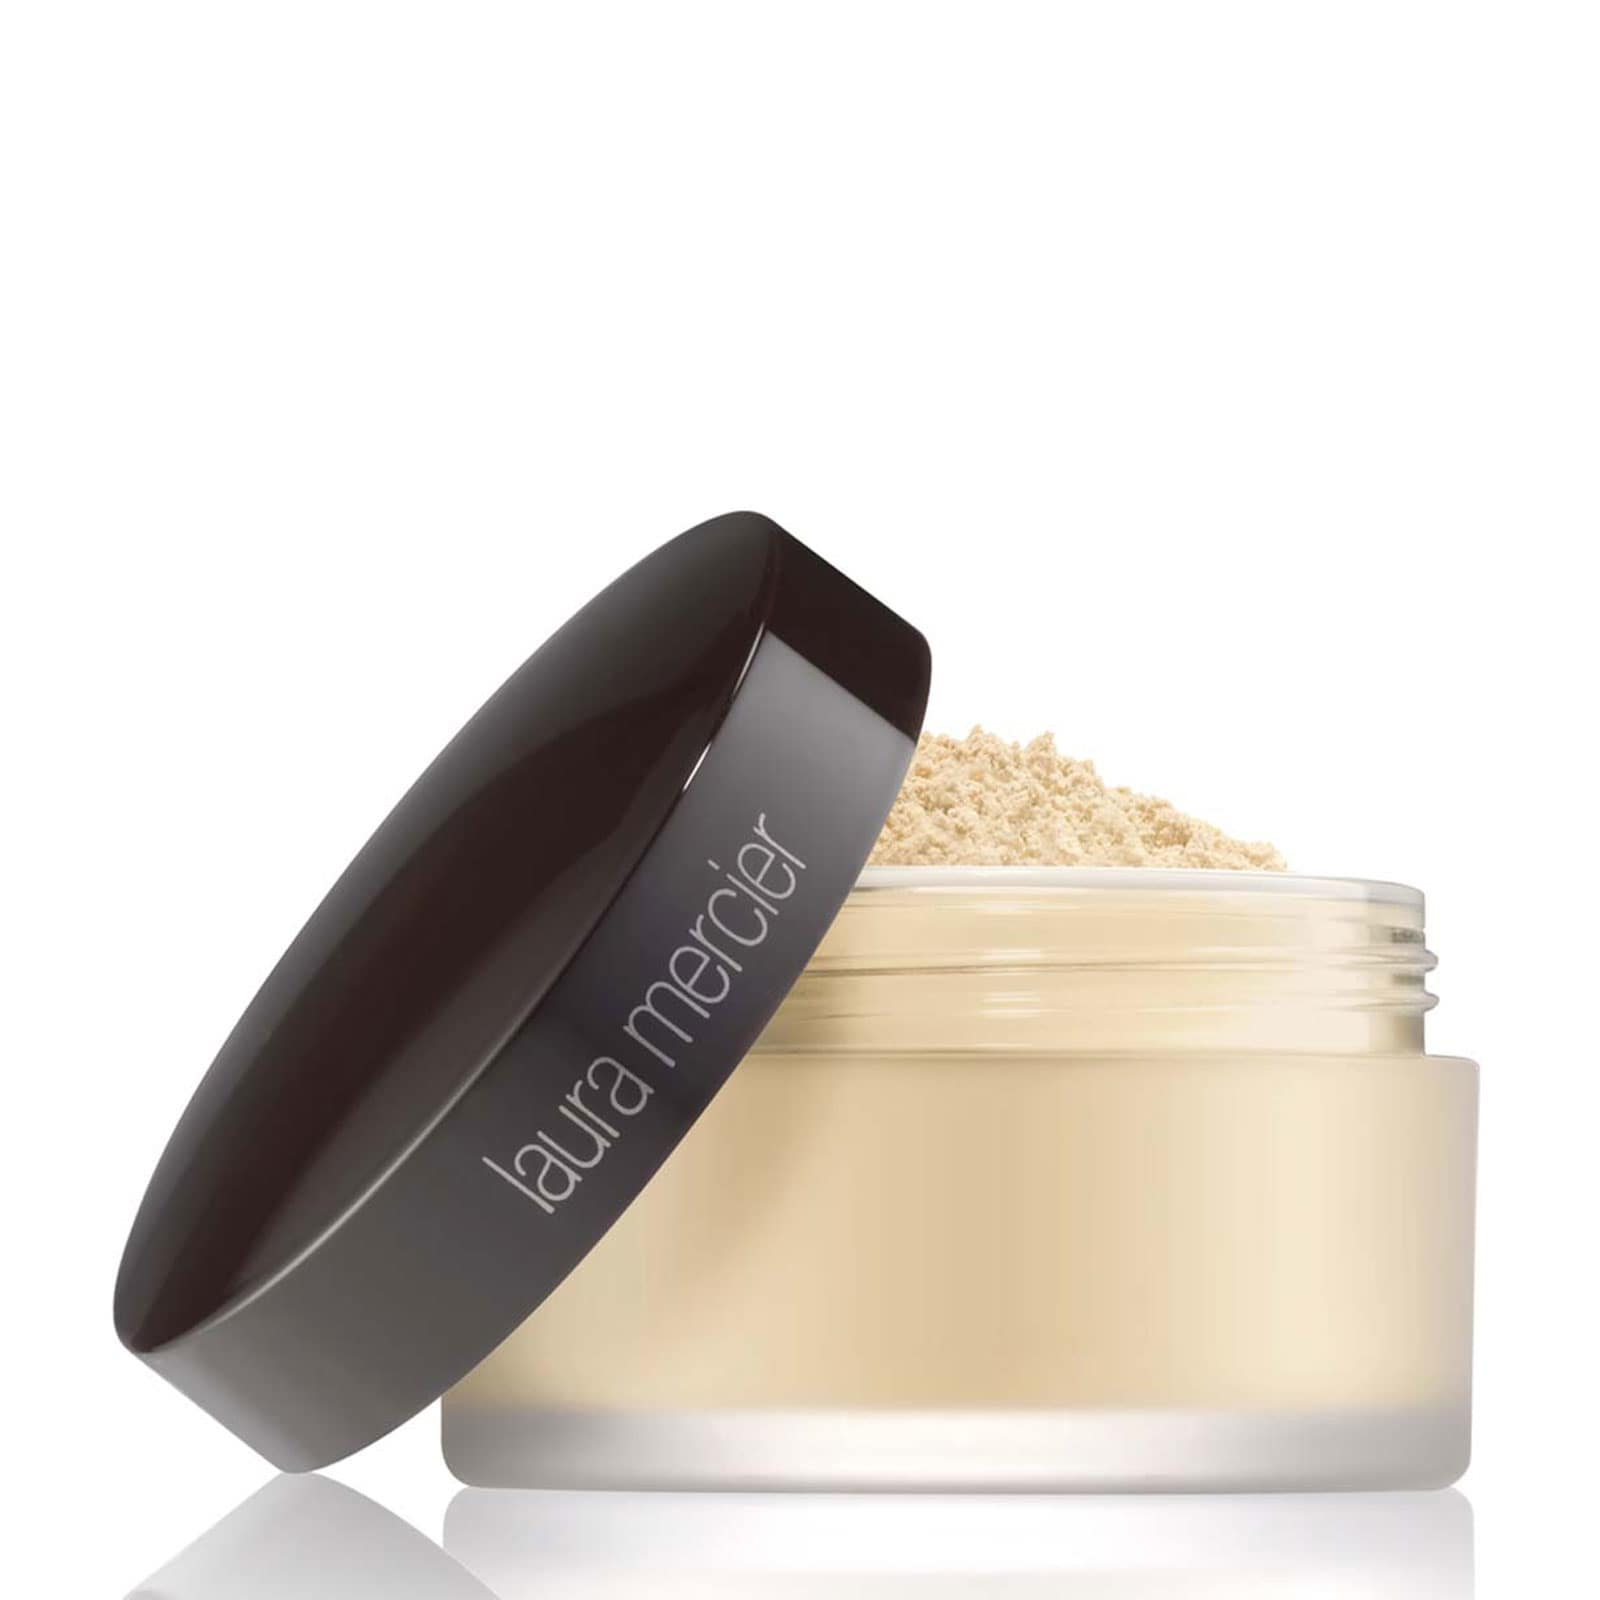 Laura Mercier setting powder travel size £18